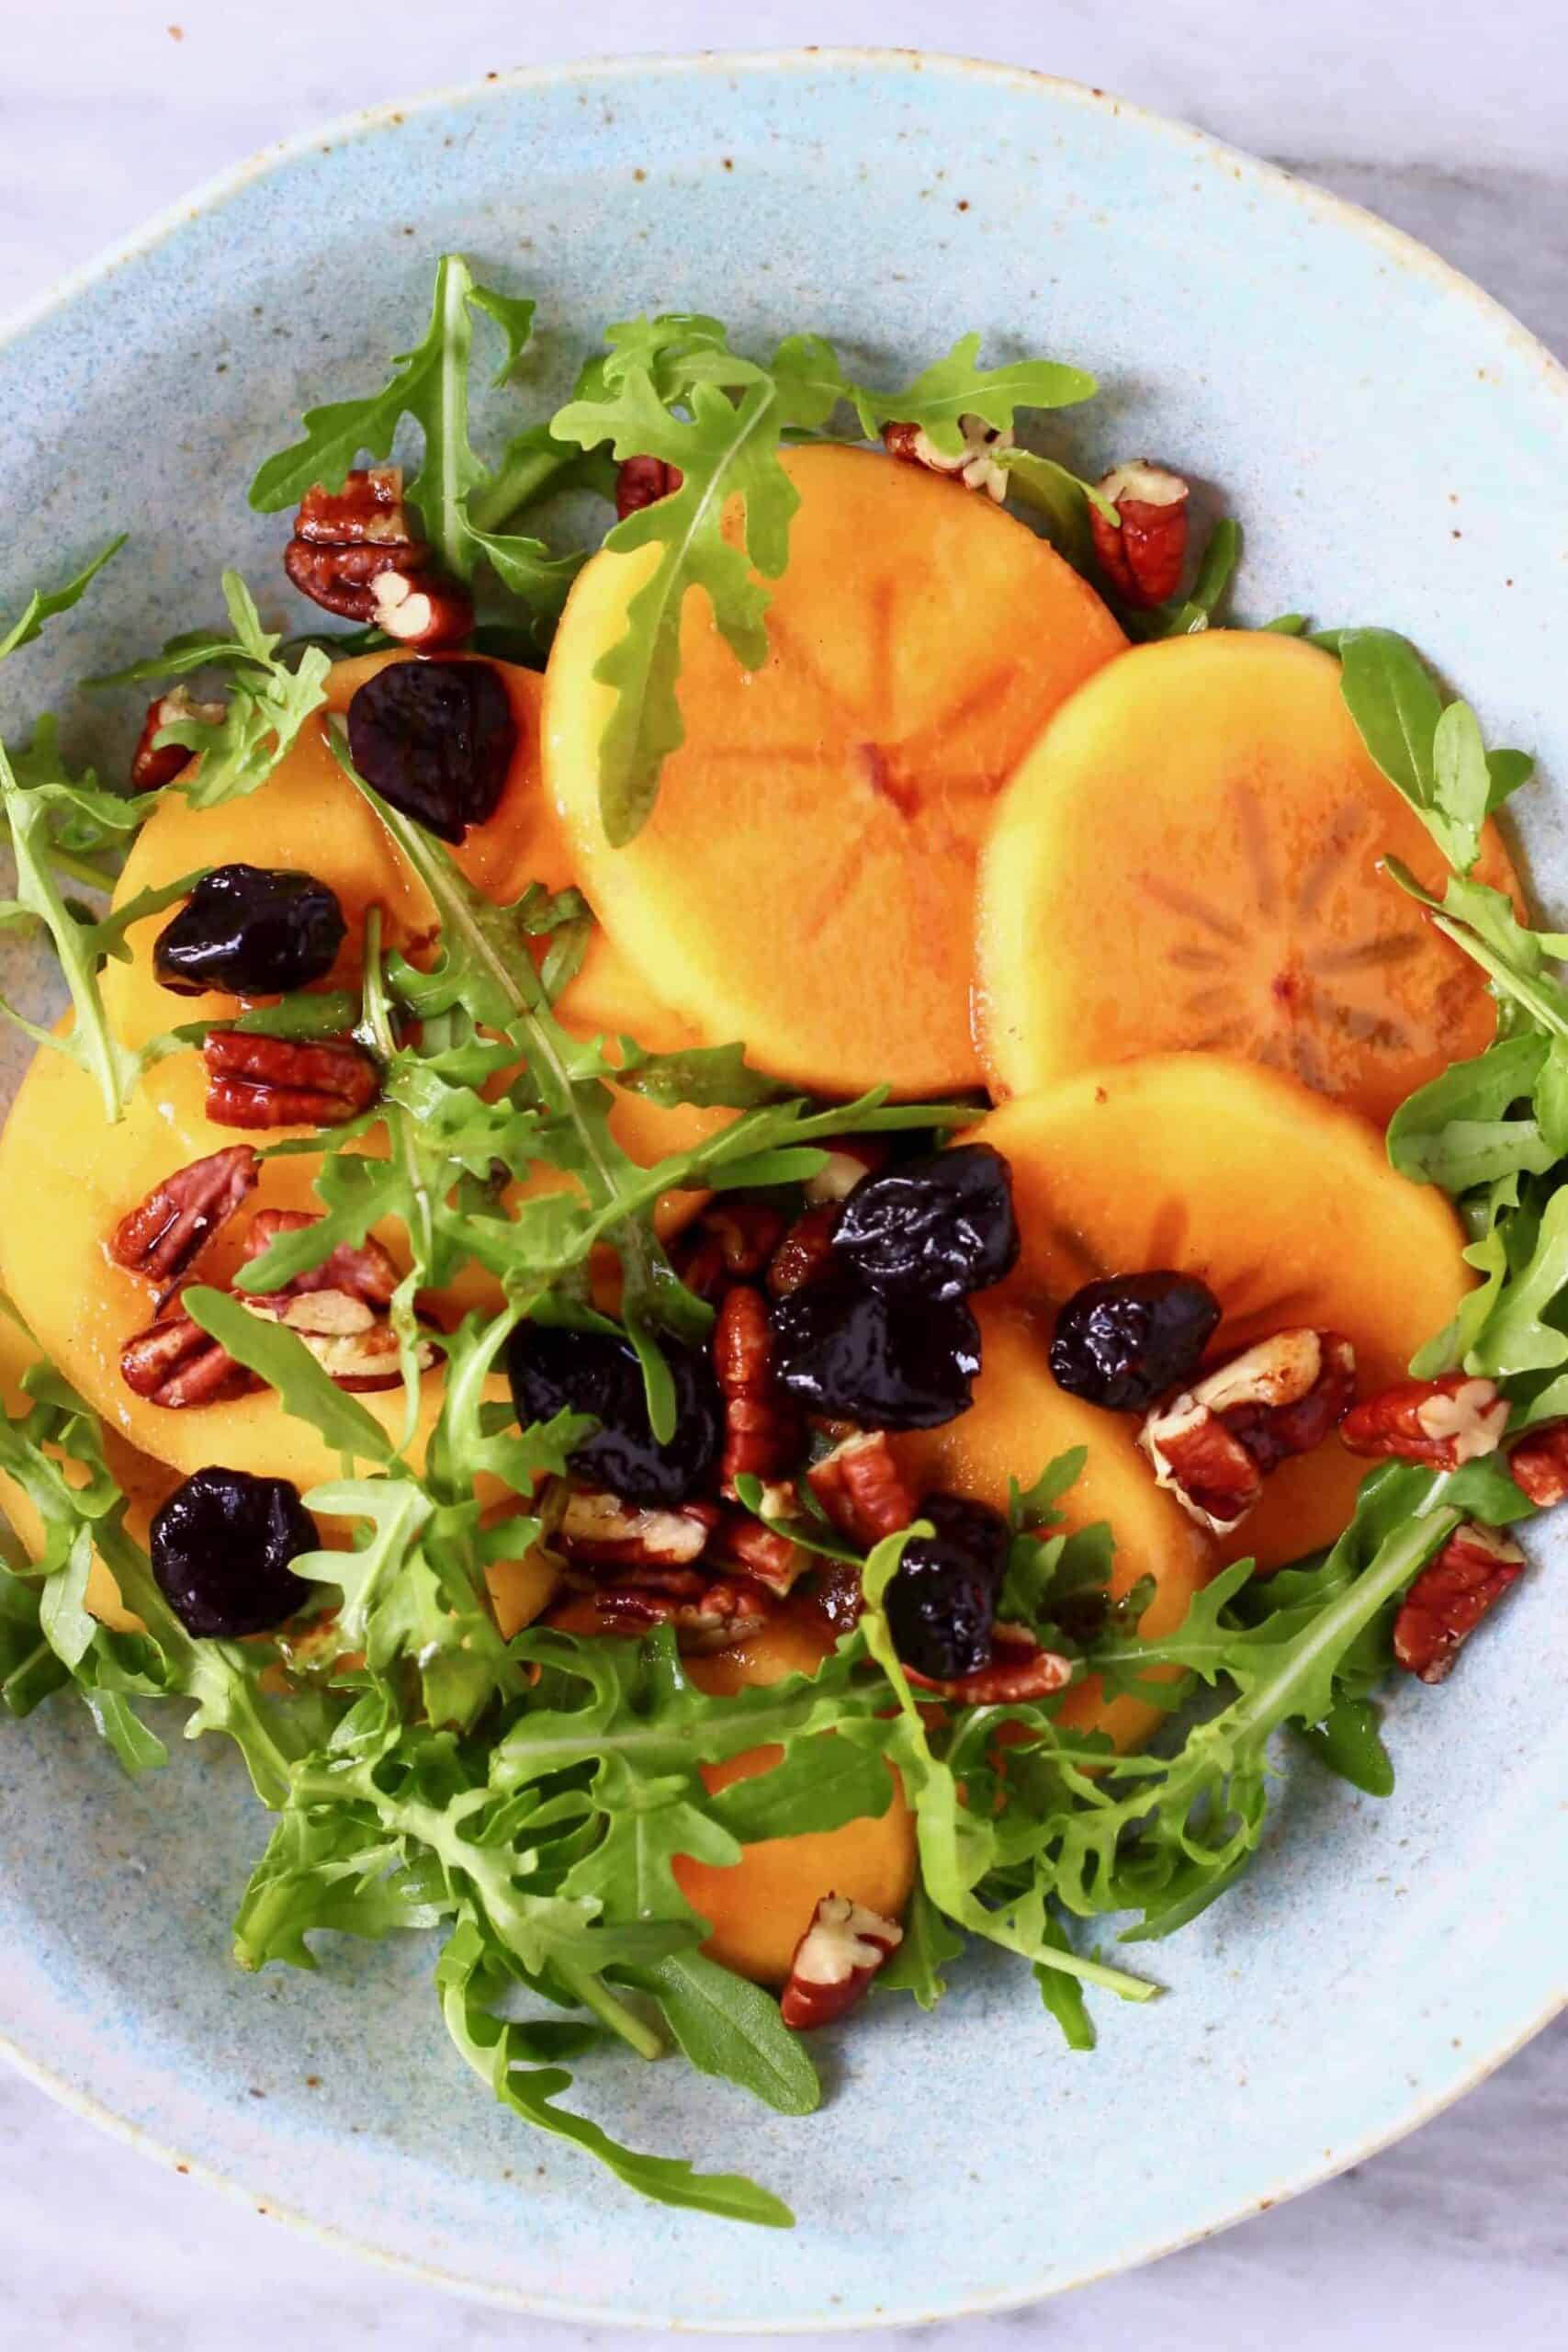 Persimmon salad with sliced persimmon, dried cherries, chopped pecan nuts and rocket in a bowl